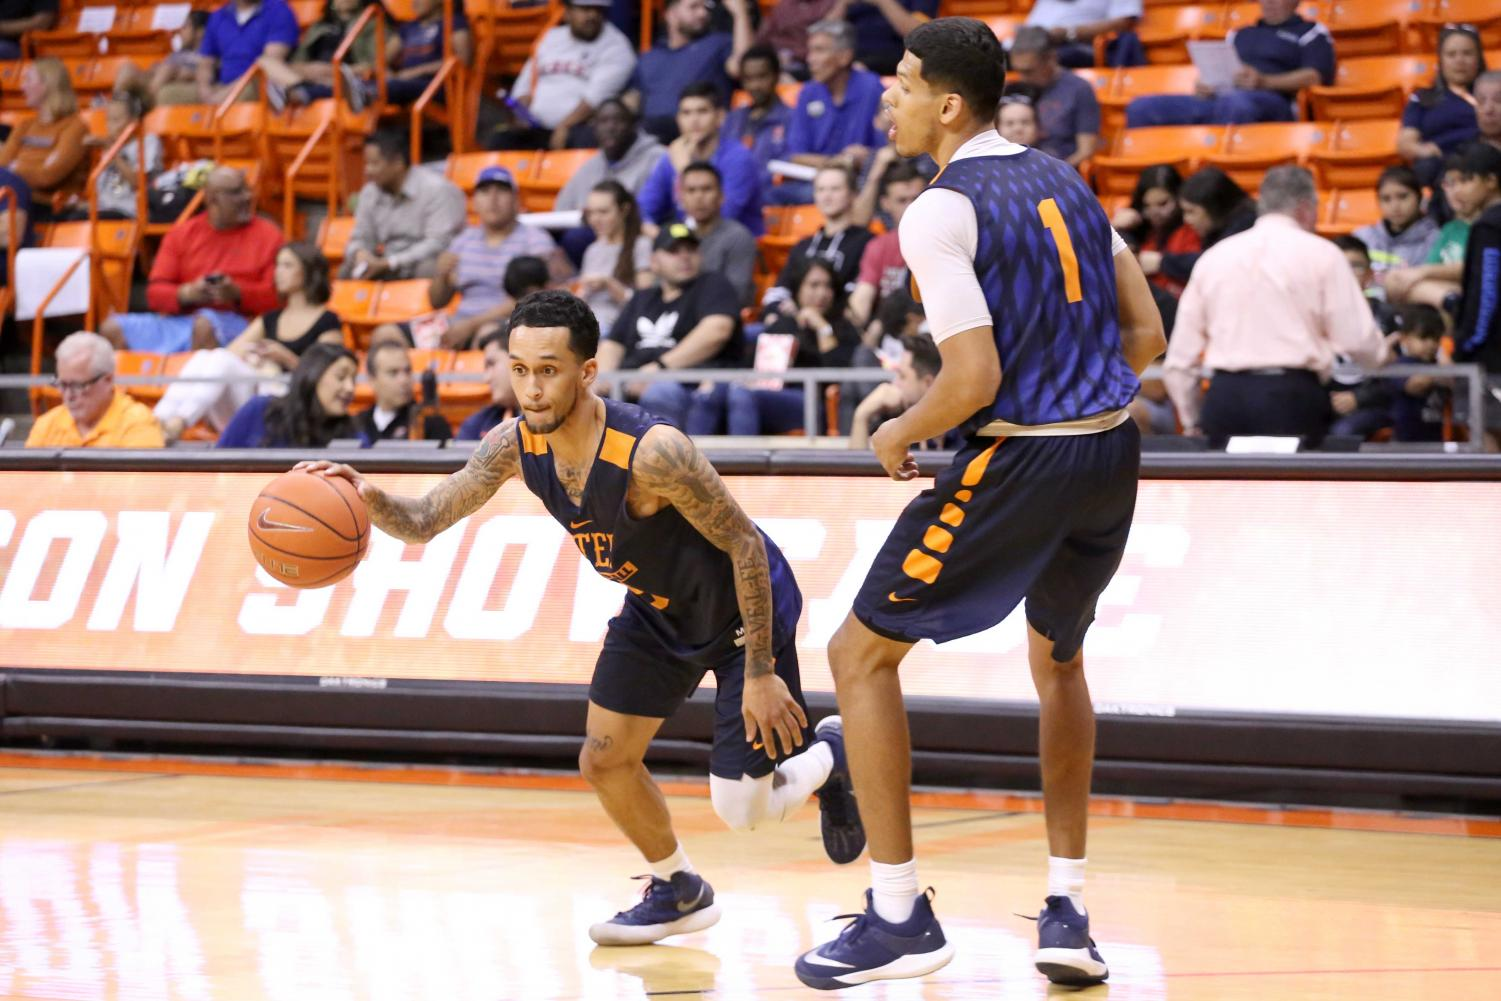 Sophomore+guard+Kobe+Magee+works+on+drills+with+senior+Paul+Thomas+during+the+basketball+pre+season+showcase+at+the+Don+Haskins+Center+on+Wednesday%2C+Oct.+10.+